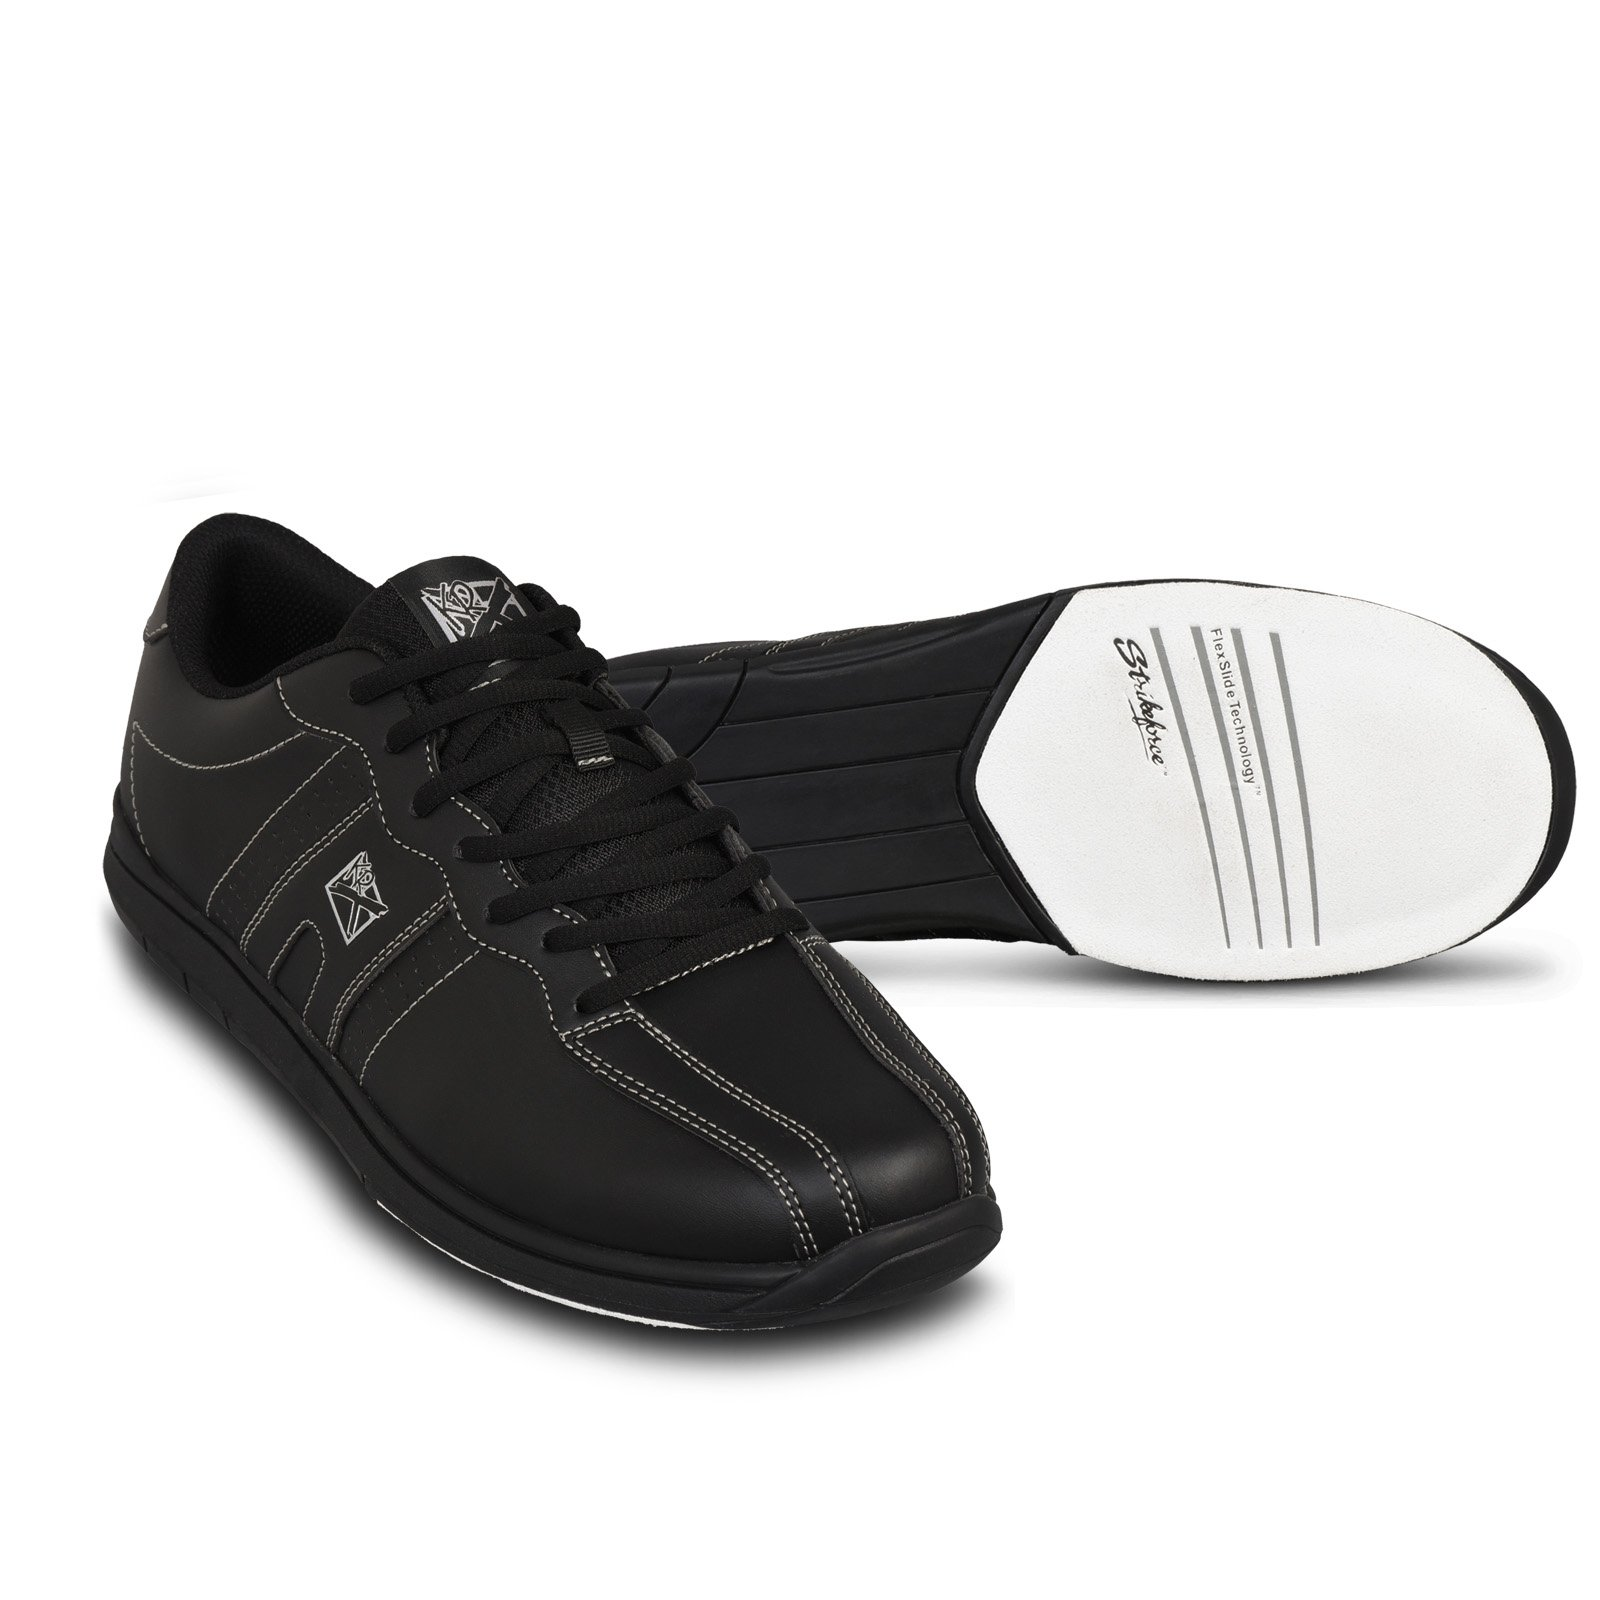 KR Strikeforce Men's O.P.P Wide Bowling Shoes, Black, Size 7.5 by KR Strikeforce (Image #5)